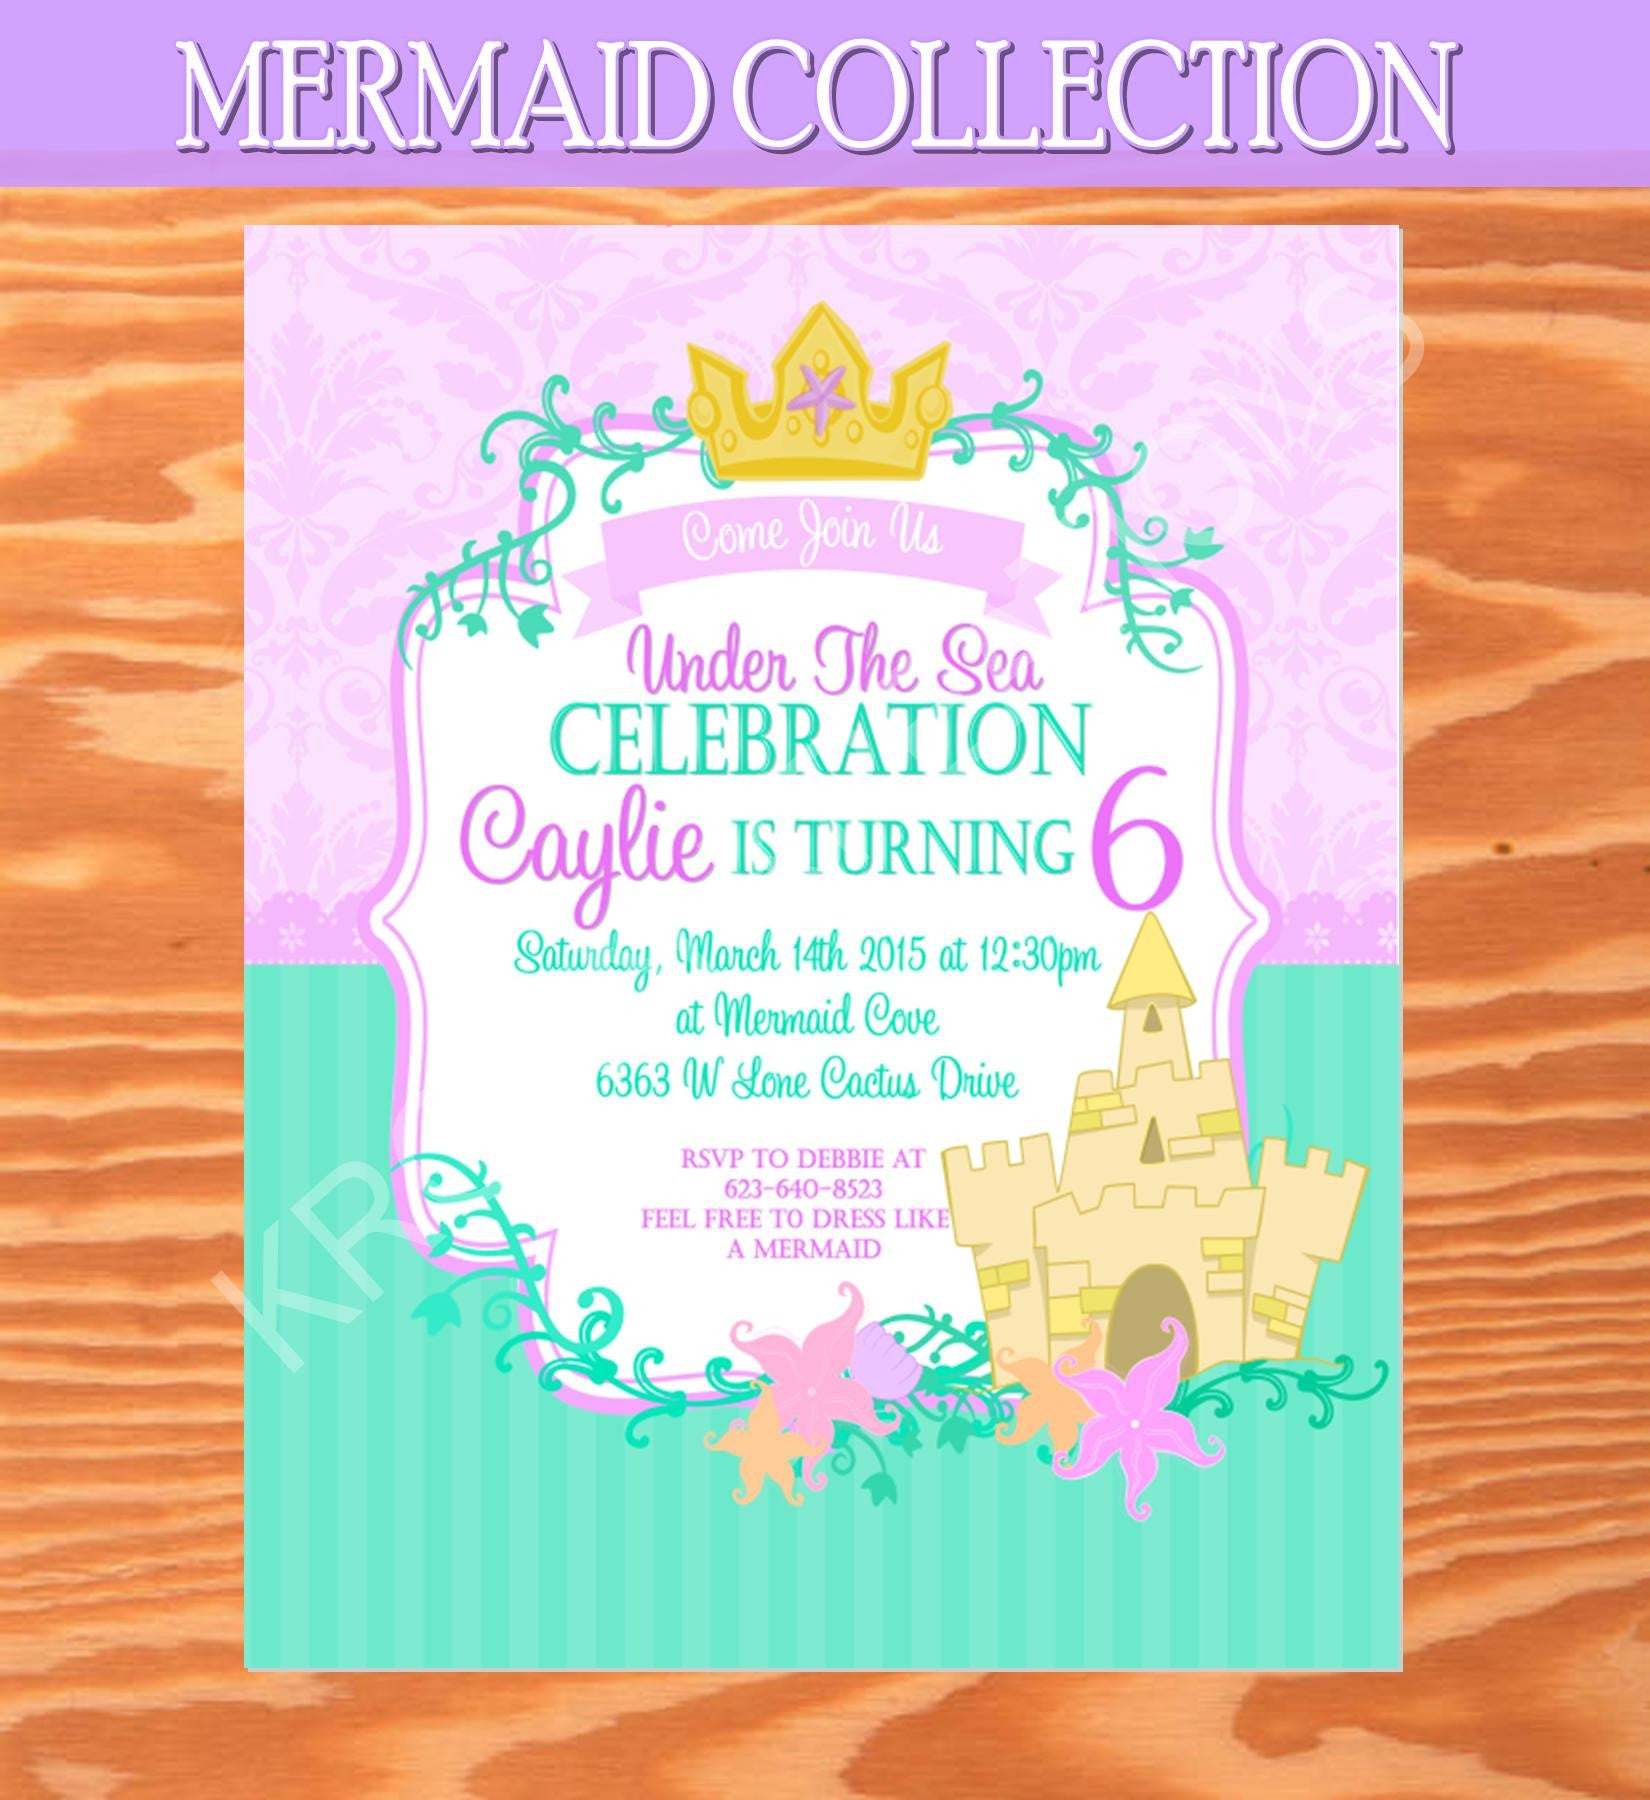 Mermaid birthday invitation mermaid party mermaid printables mermaid birthday invitation mermaid party mermaid printables filmwisefo